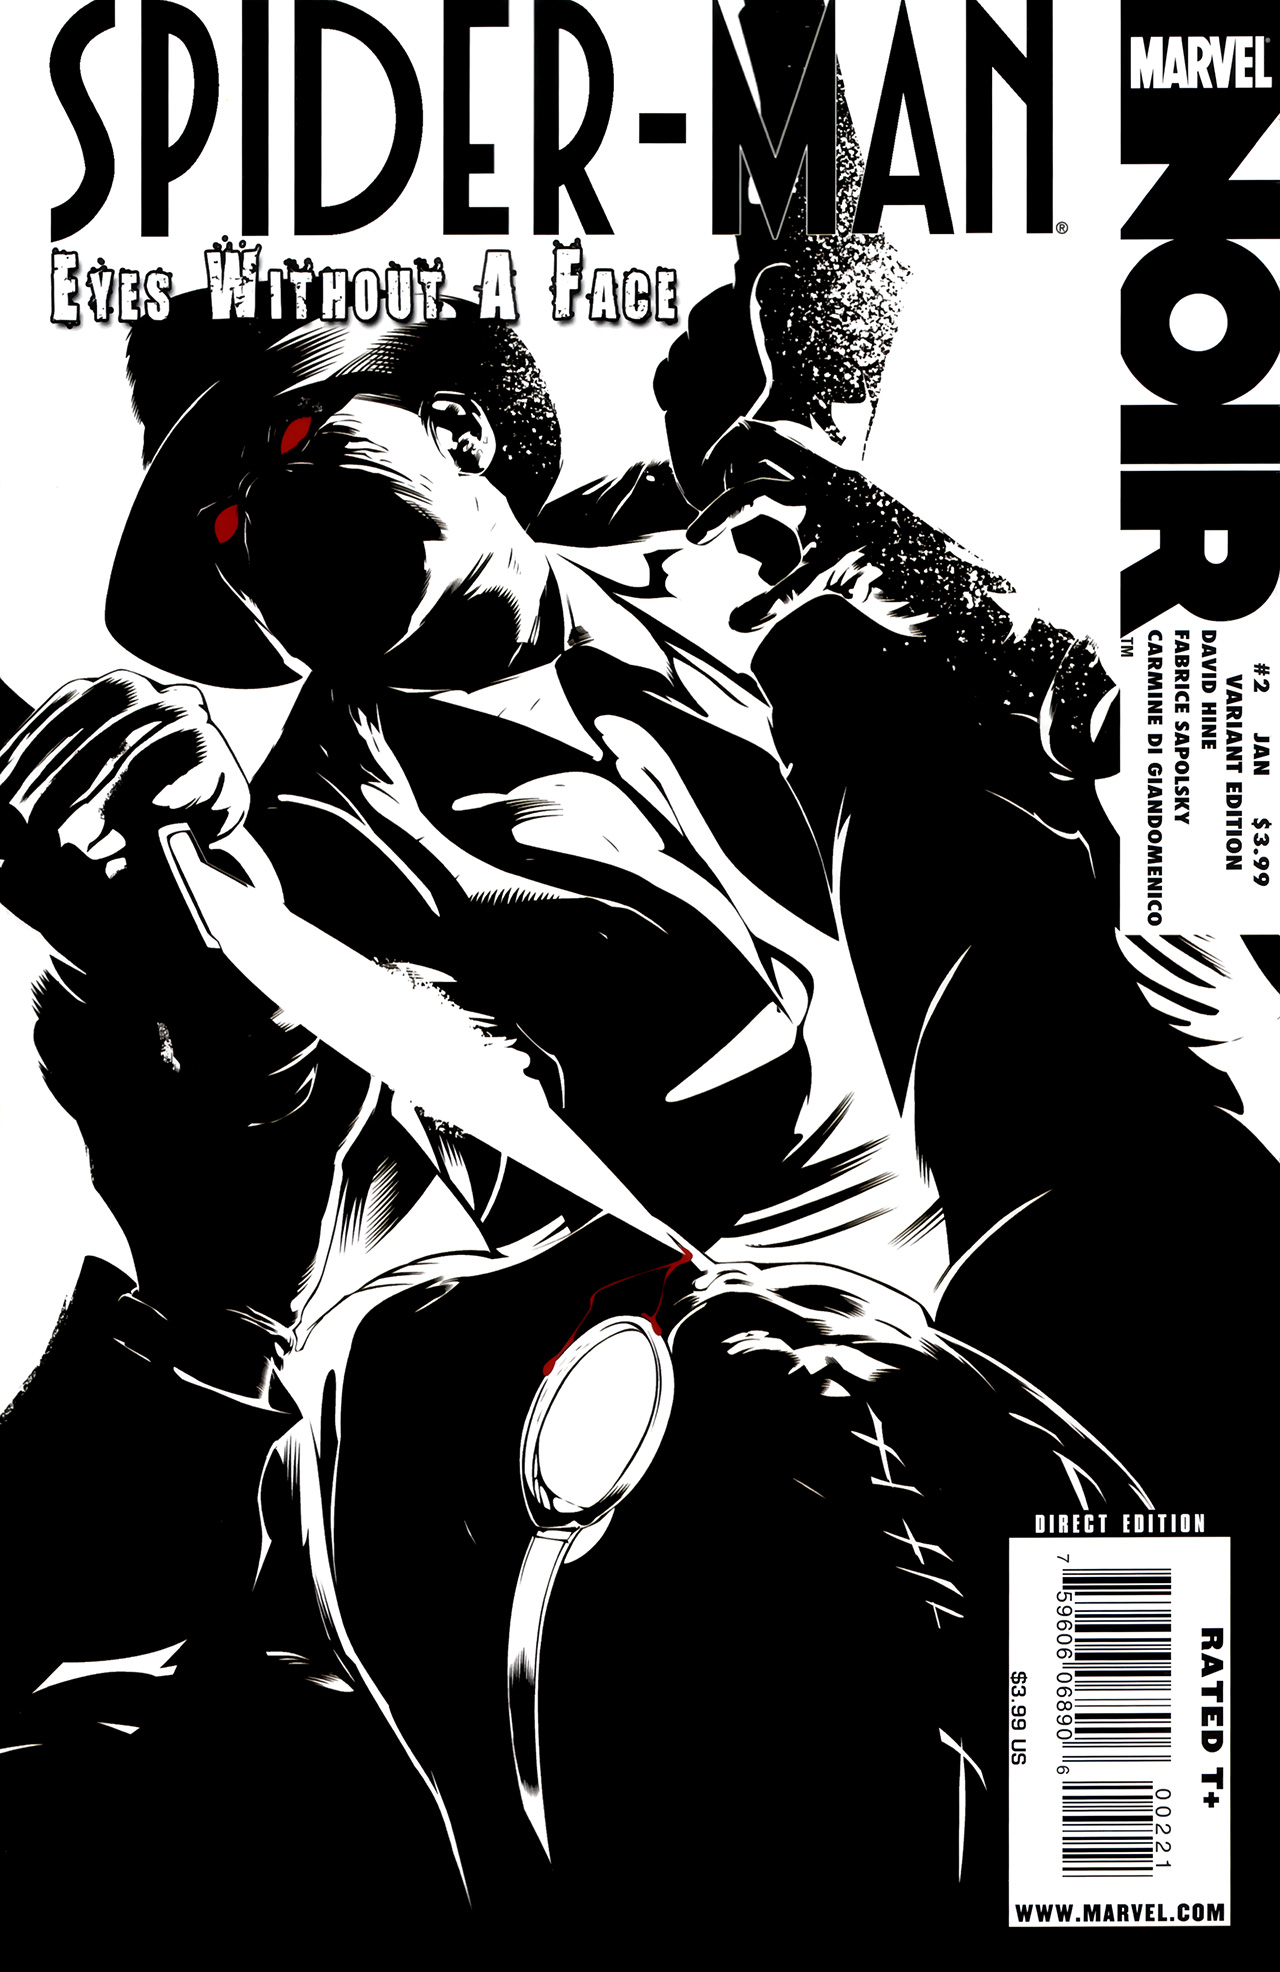 Spider-Man Noir Eyes Without A Face Vol 1 2 Calero Variant.jpg